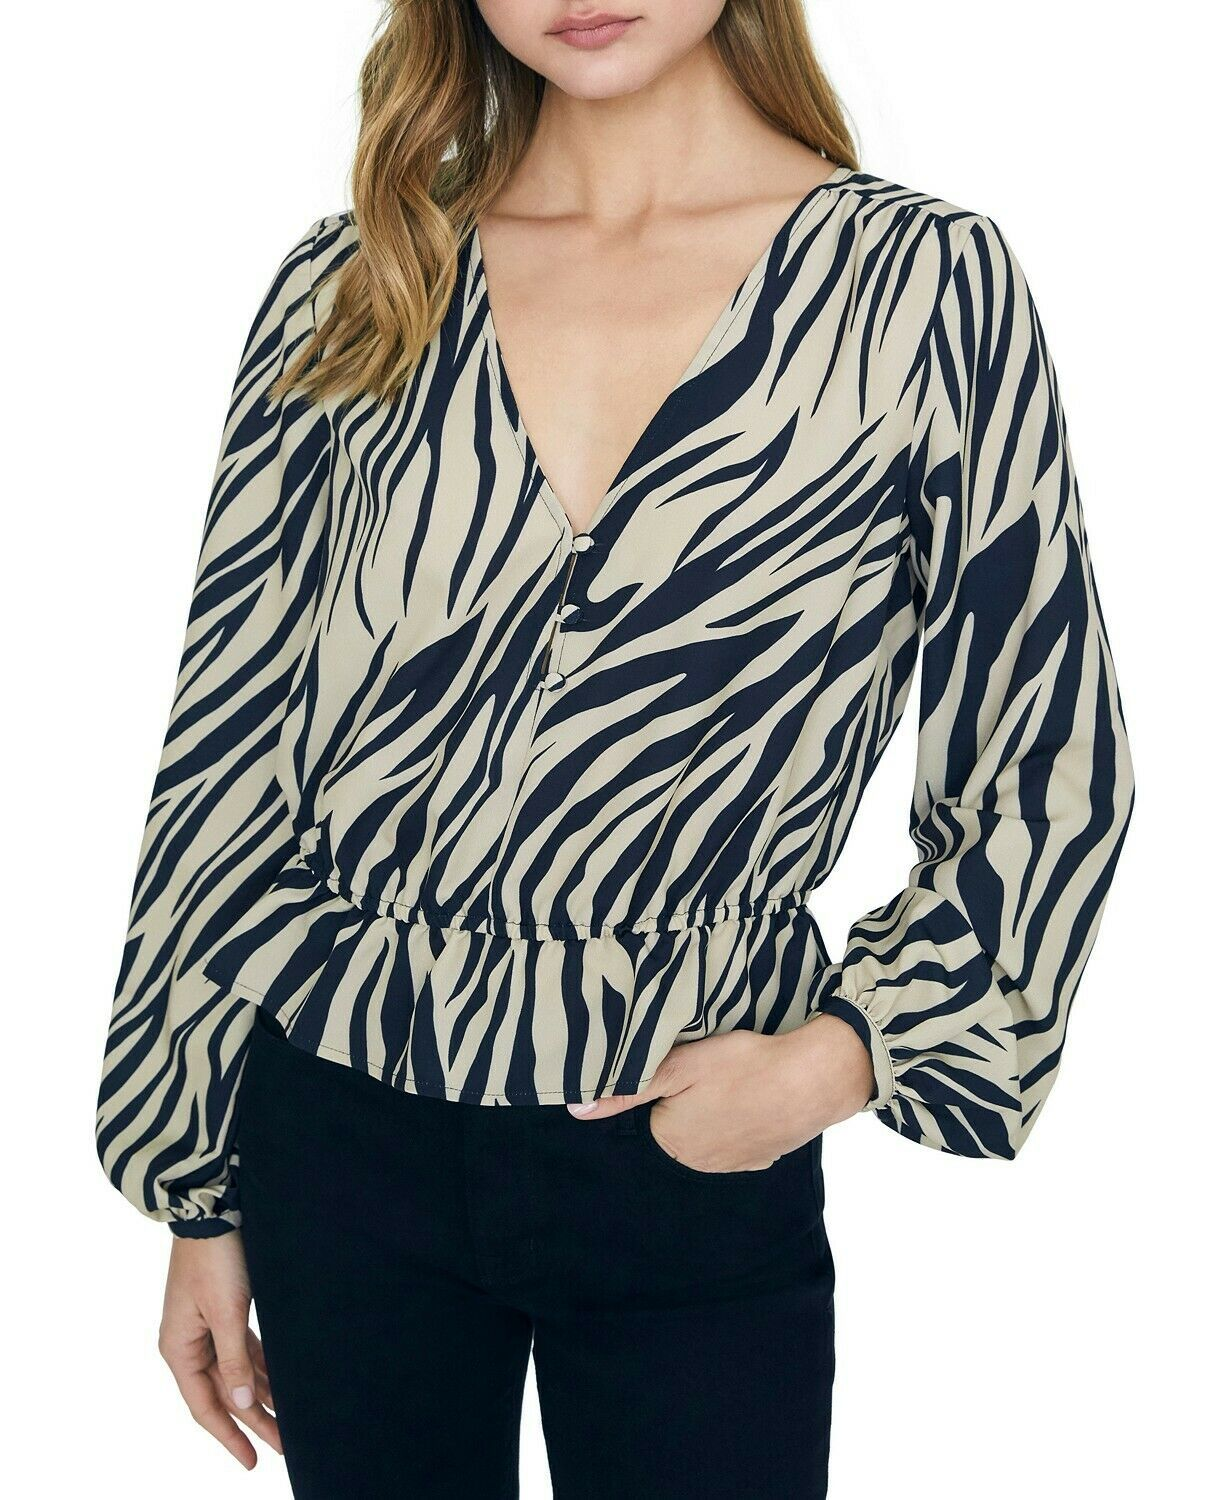 Primary image for Sanctuary All Nighter Zebra Peplum Top Blouse, New Romantic, S